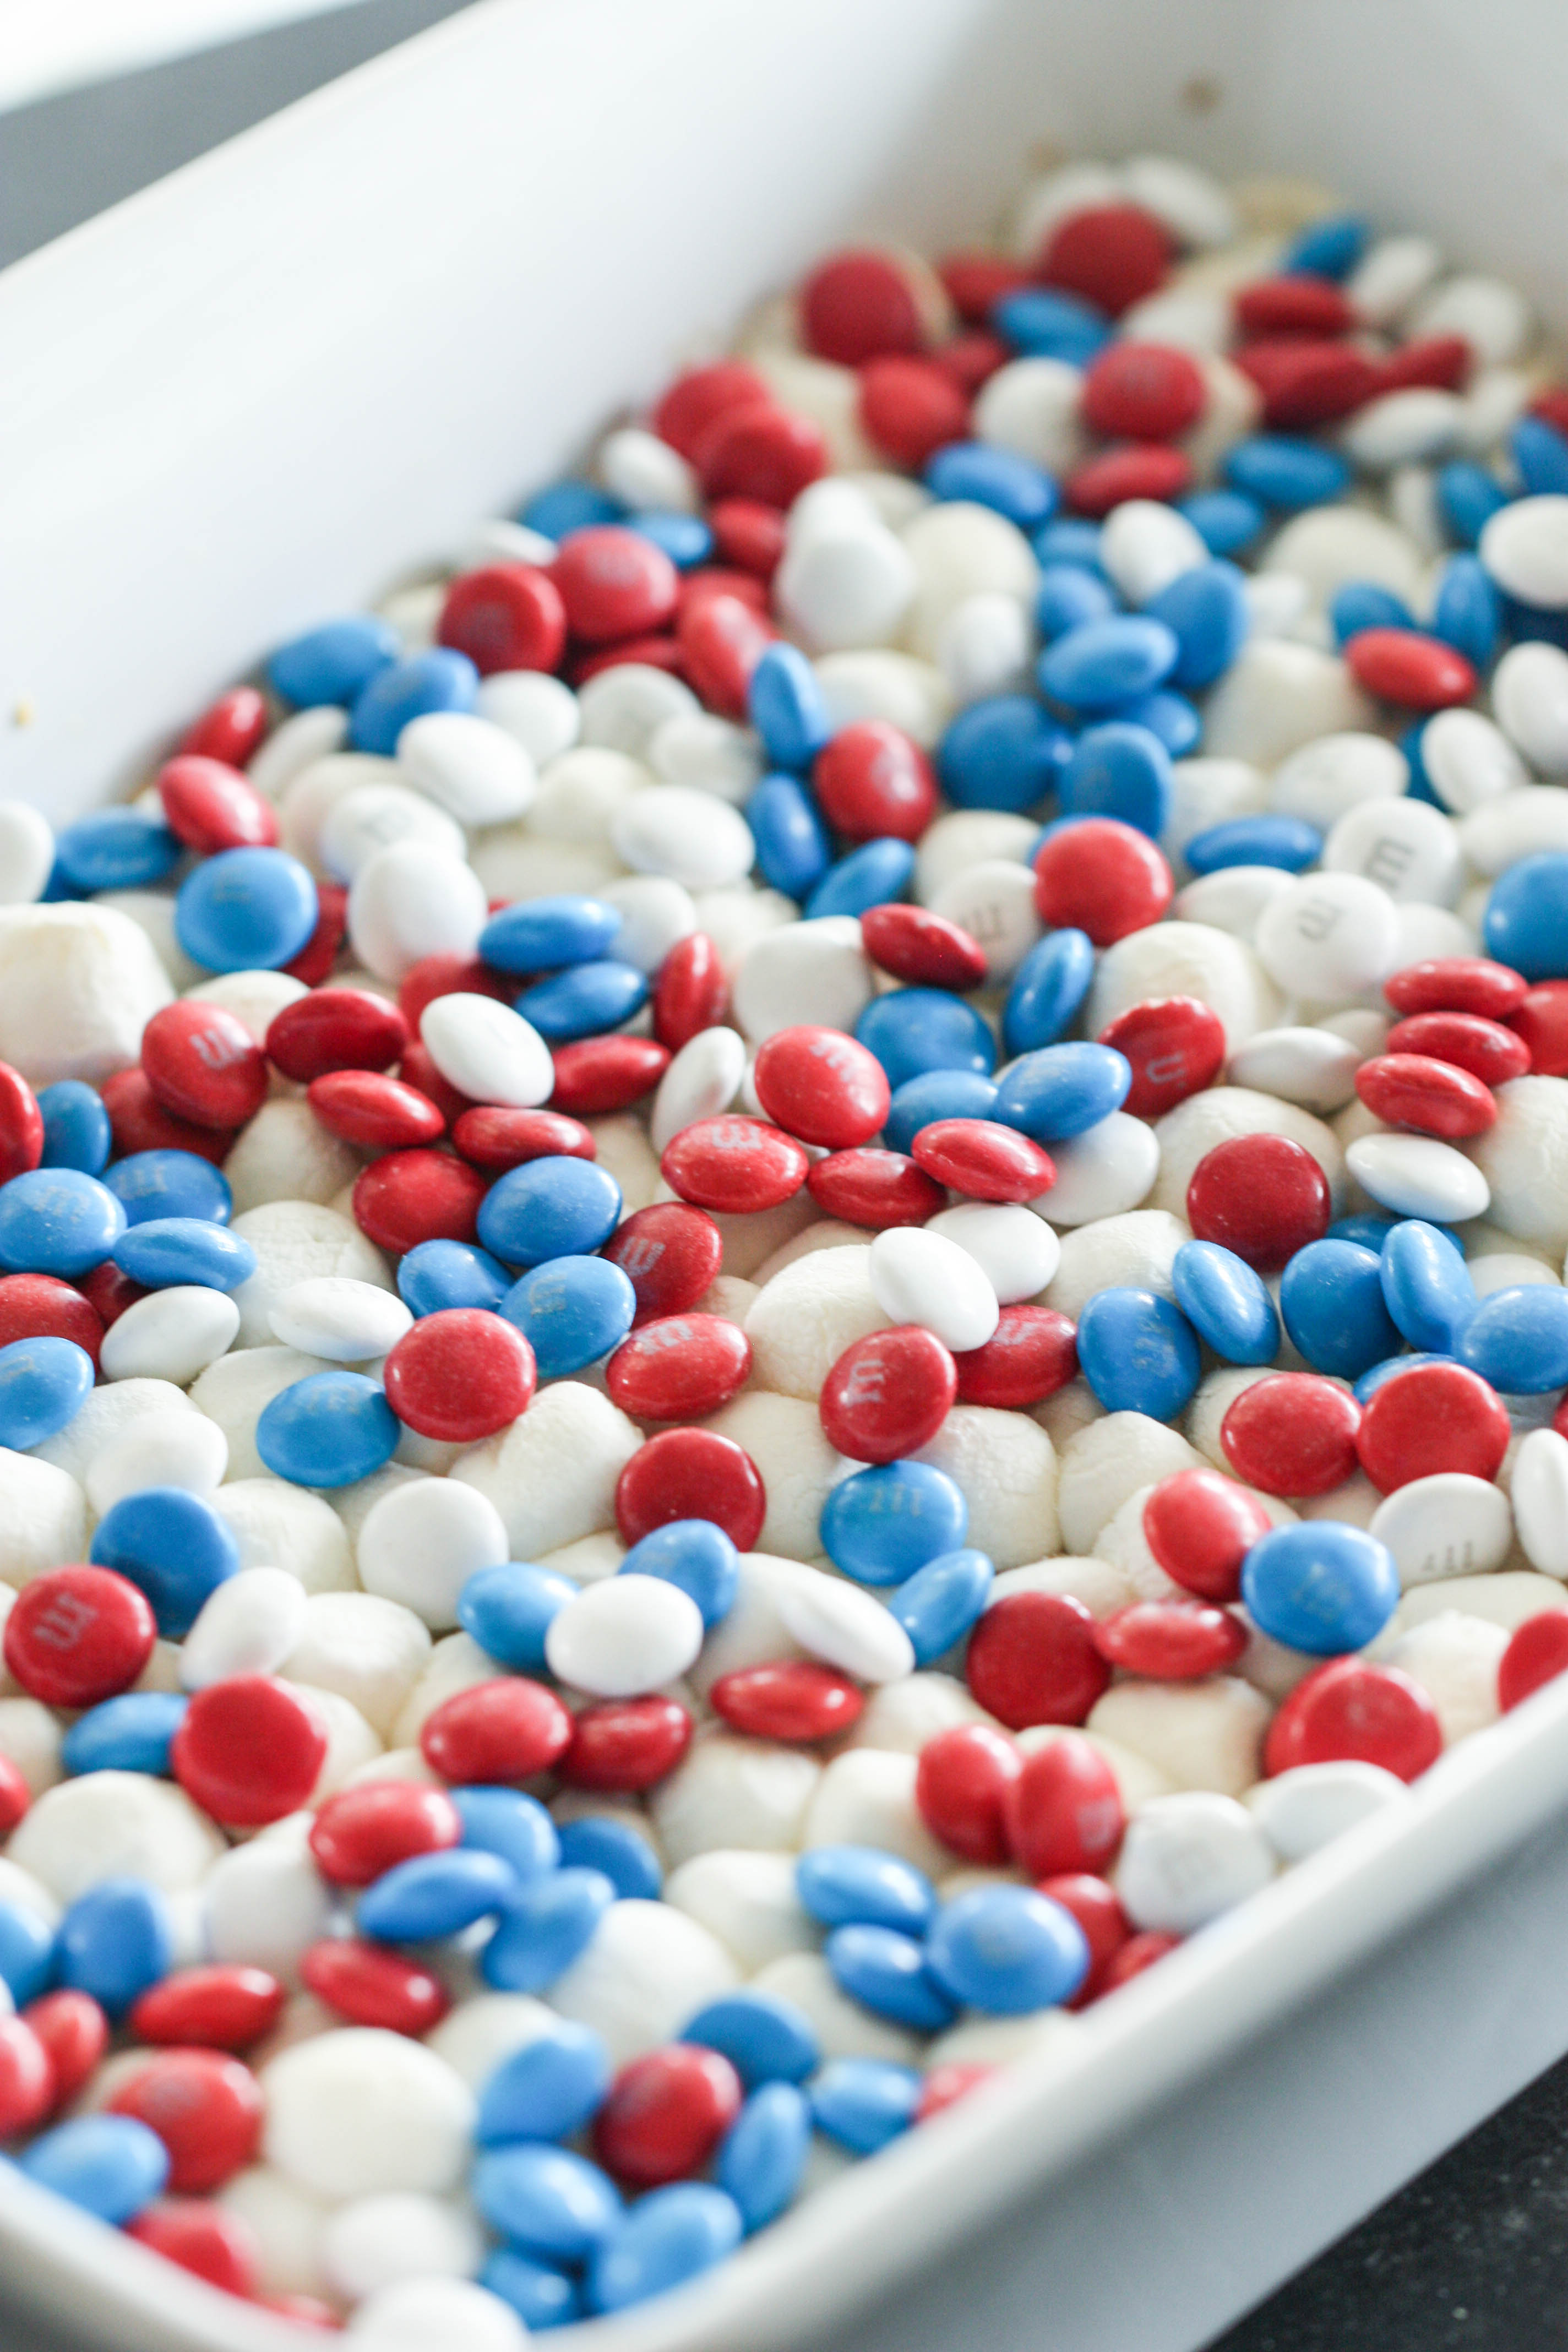 Red White and Blue M&M's for the top layer